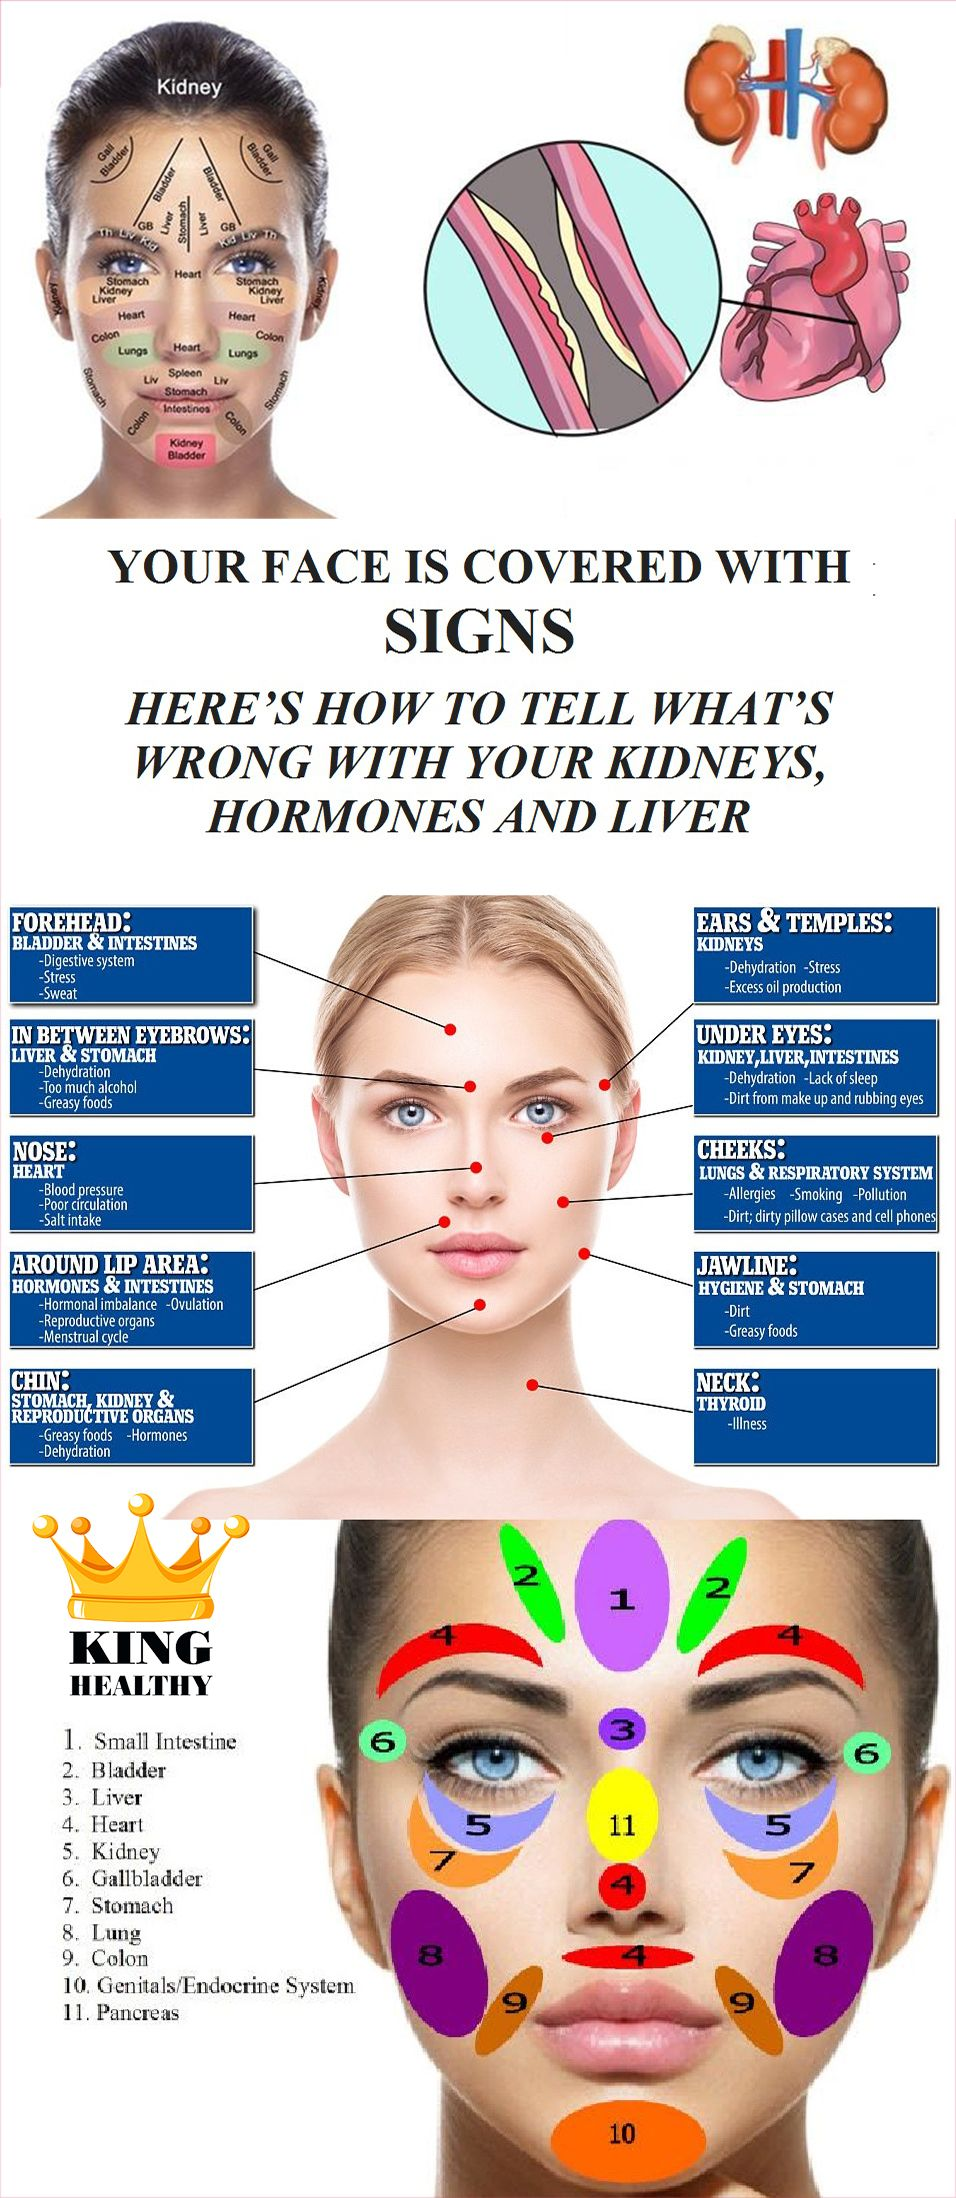 how to tell if something is wrong with your liver